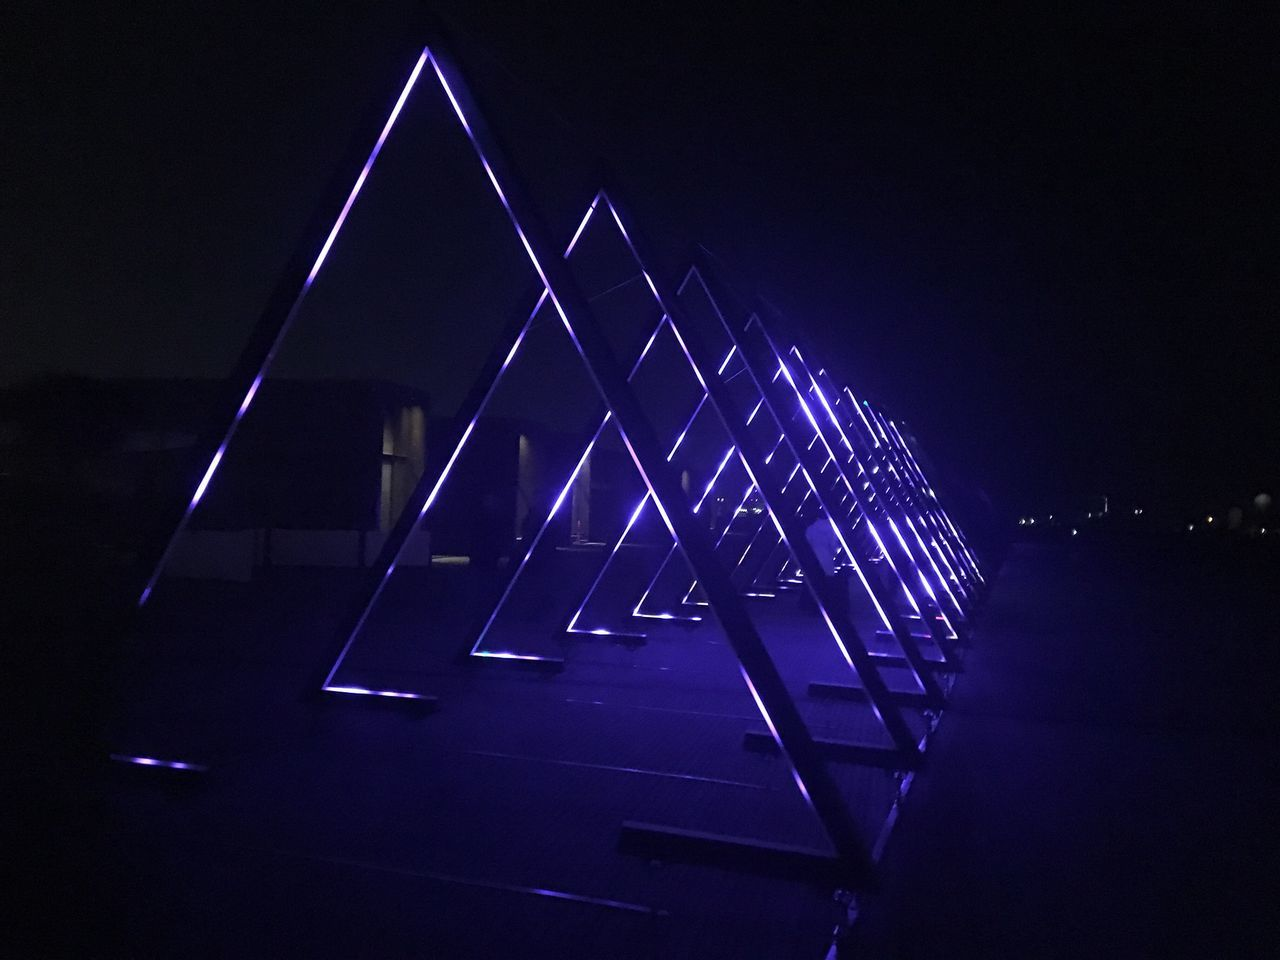 night, triangle shape, illuminated, architecture, no people, blue, built structure, outdoors